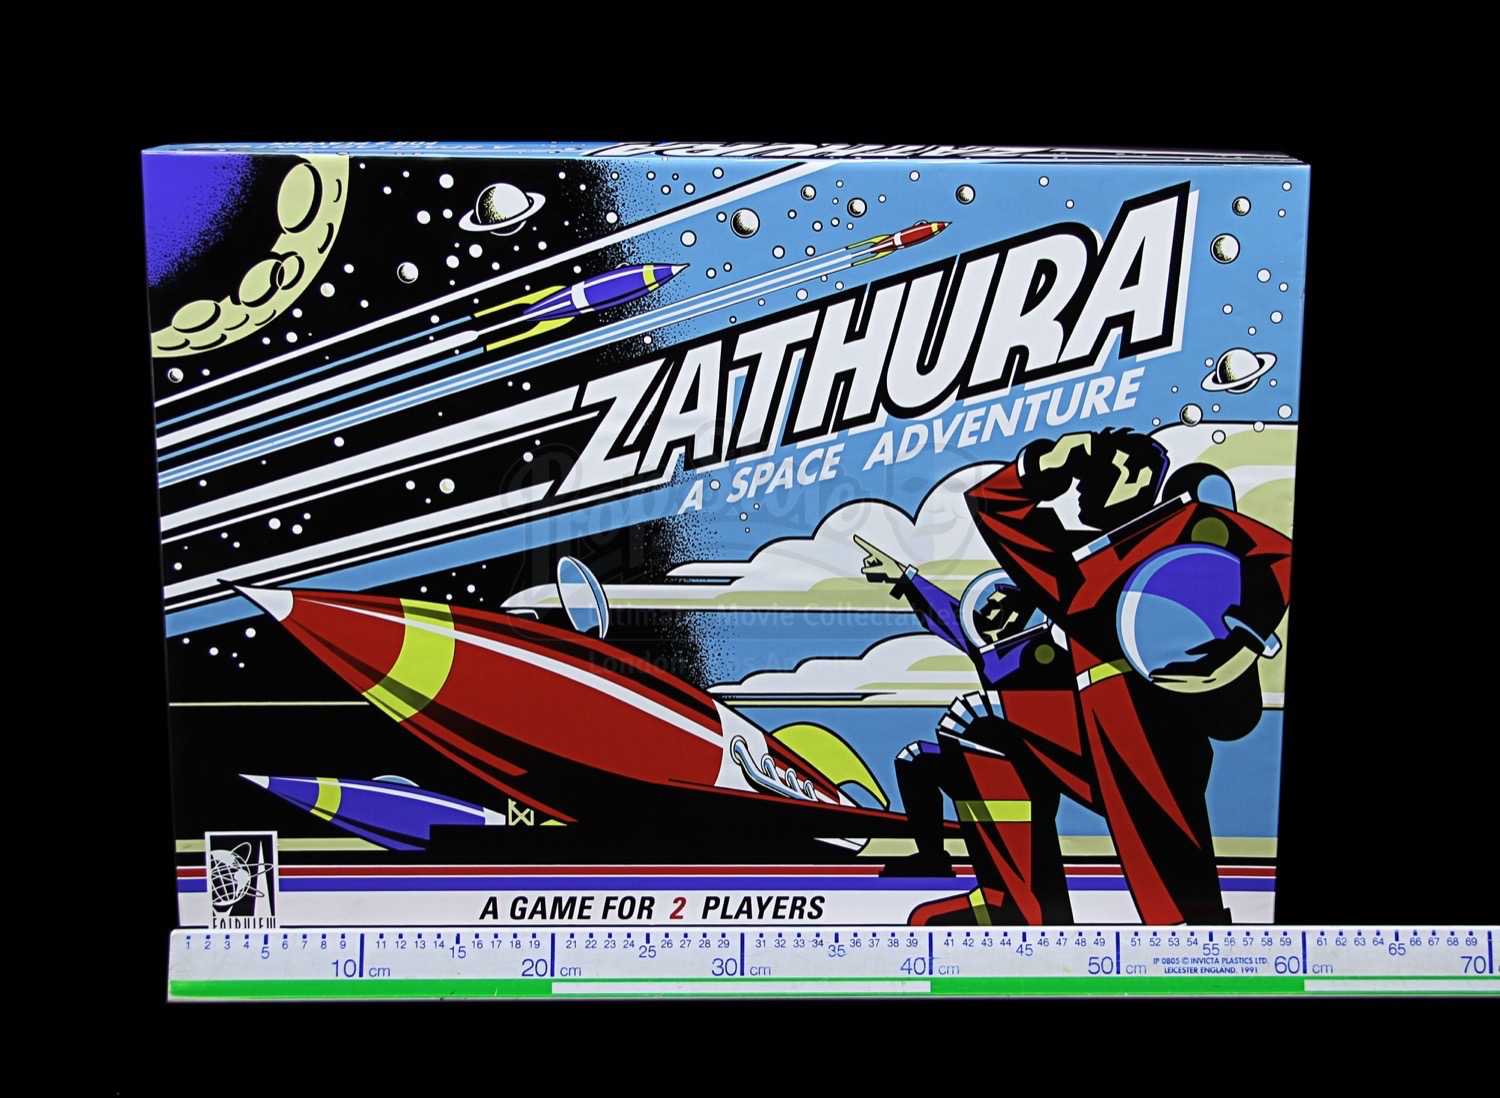 ZATHURA: A SPACE ADVENTURE (2005) - Board Game Box - Current ... on sky high house plans, epic house plans, bewitched house plans, cargo house plans, luxury house plans, elf house plans, ponyo house plans, iron man house plans, moon house plans, salt house plans, twilight house plans, panic room house plans, monster house house plans, craftsman house plans, rv house plans, sunshine house plans, skyfall house plans, enchanted house plans, jumanji house plans, 15 bedroom house floor plans,